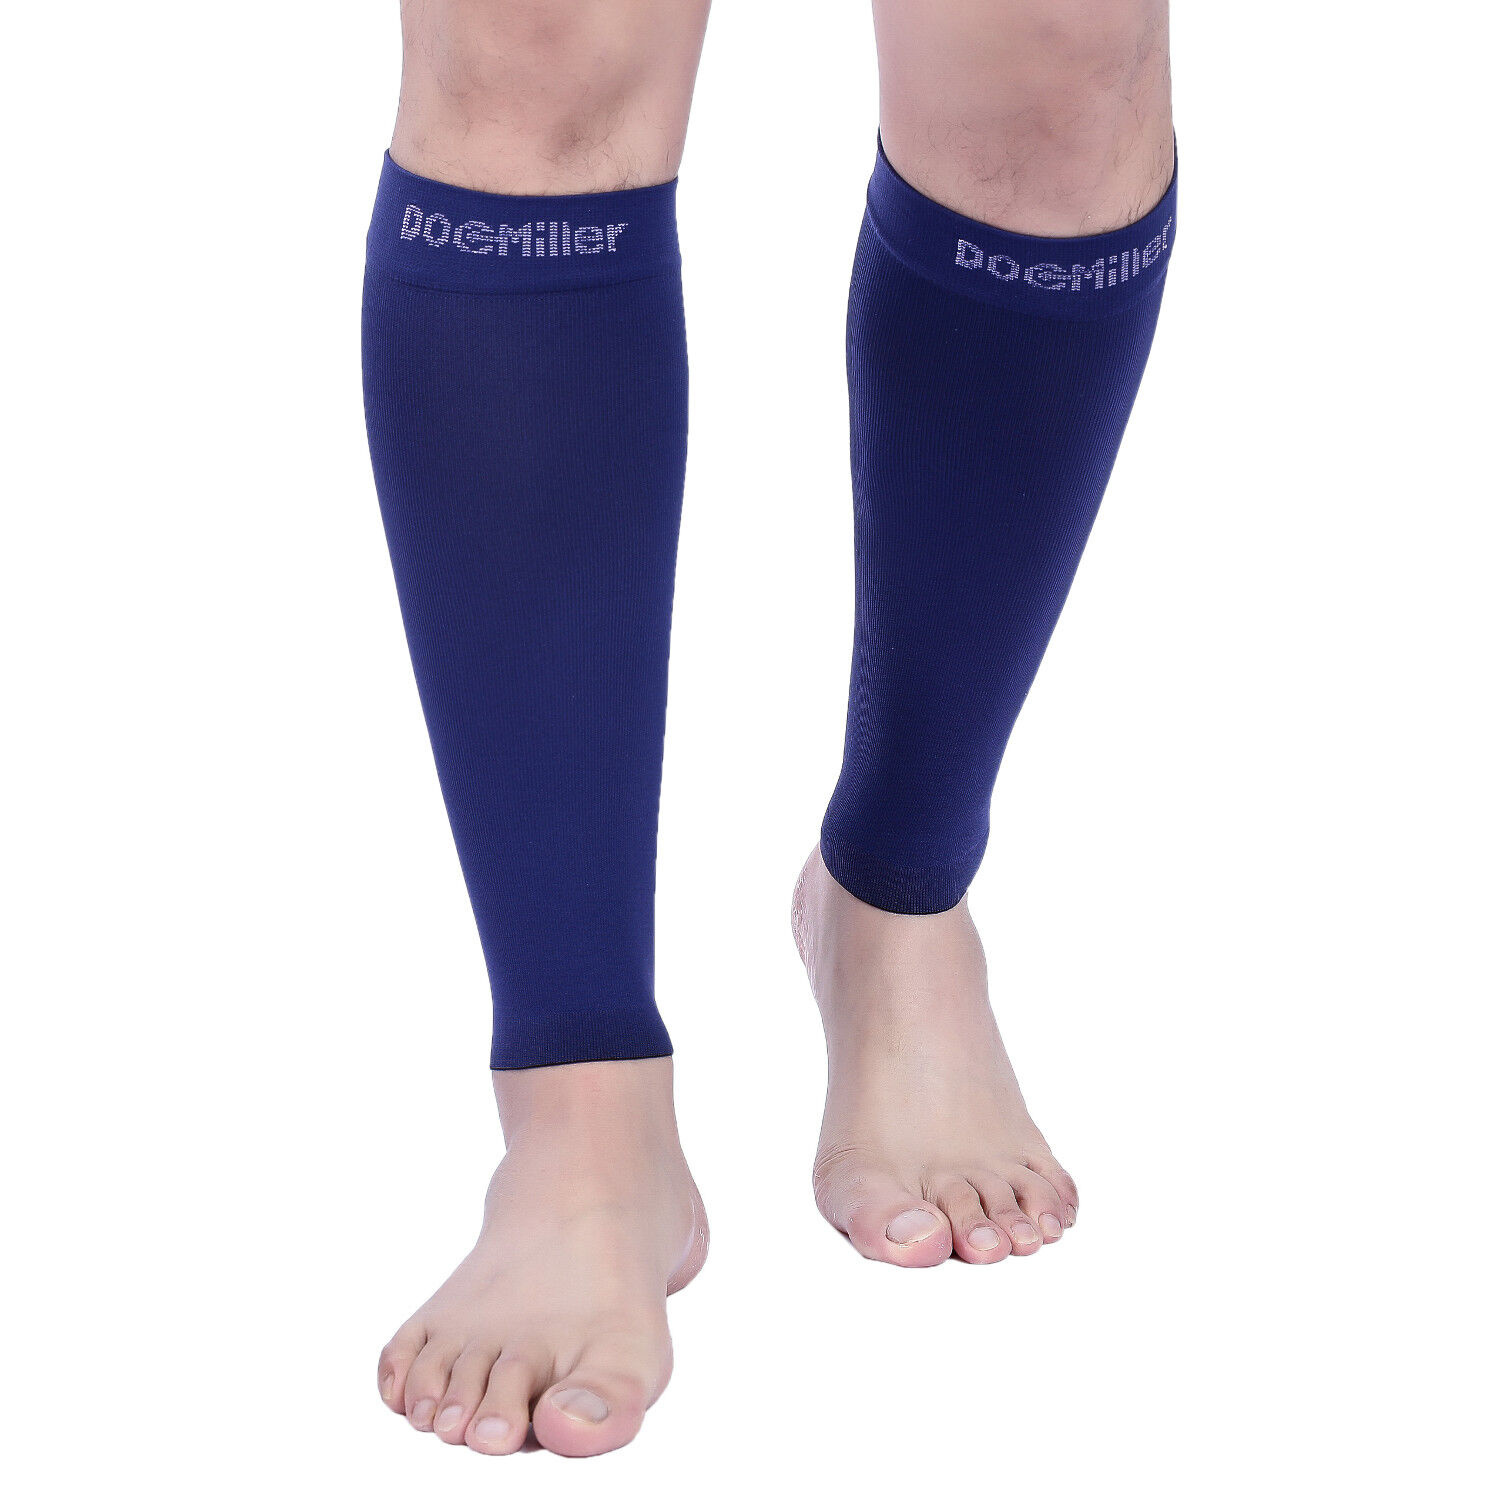 0dd00a5b1b5 Details about Doc Miller Calf Compression Sleeve 1 Pair 20-30mmHg Varicose  Recovery DARK BLUE